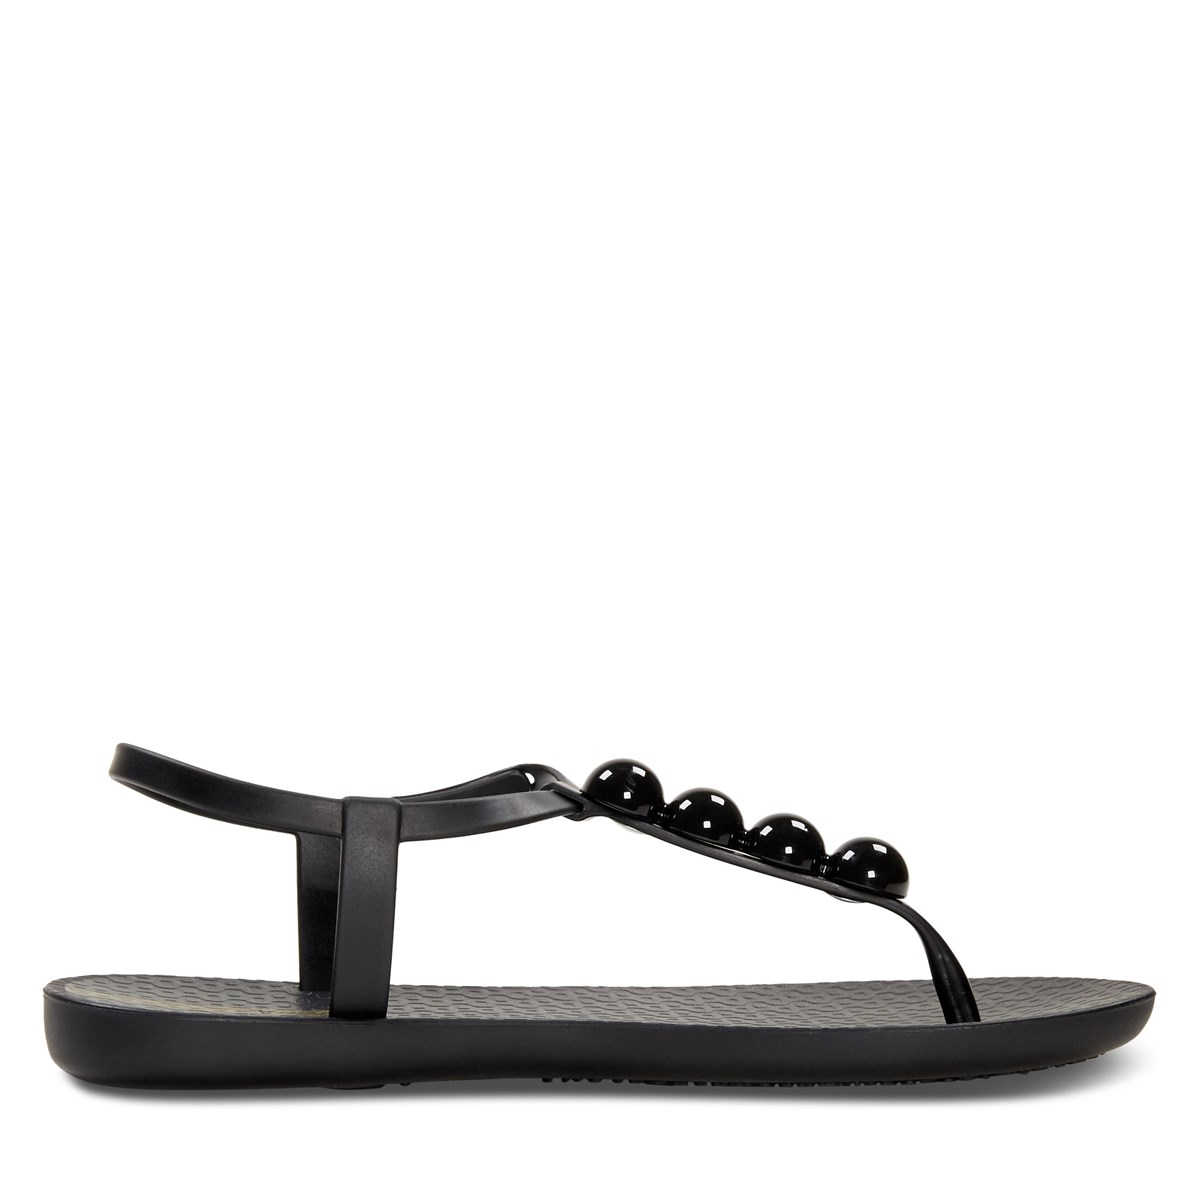 Women's Pearl Sandal in Black